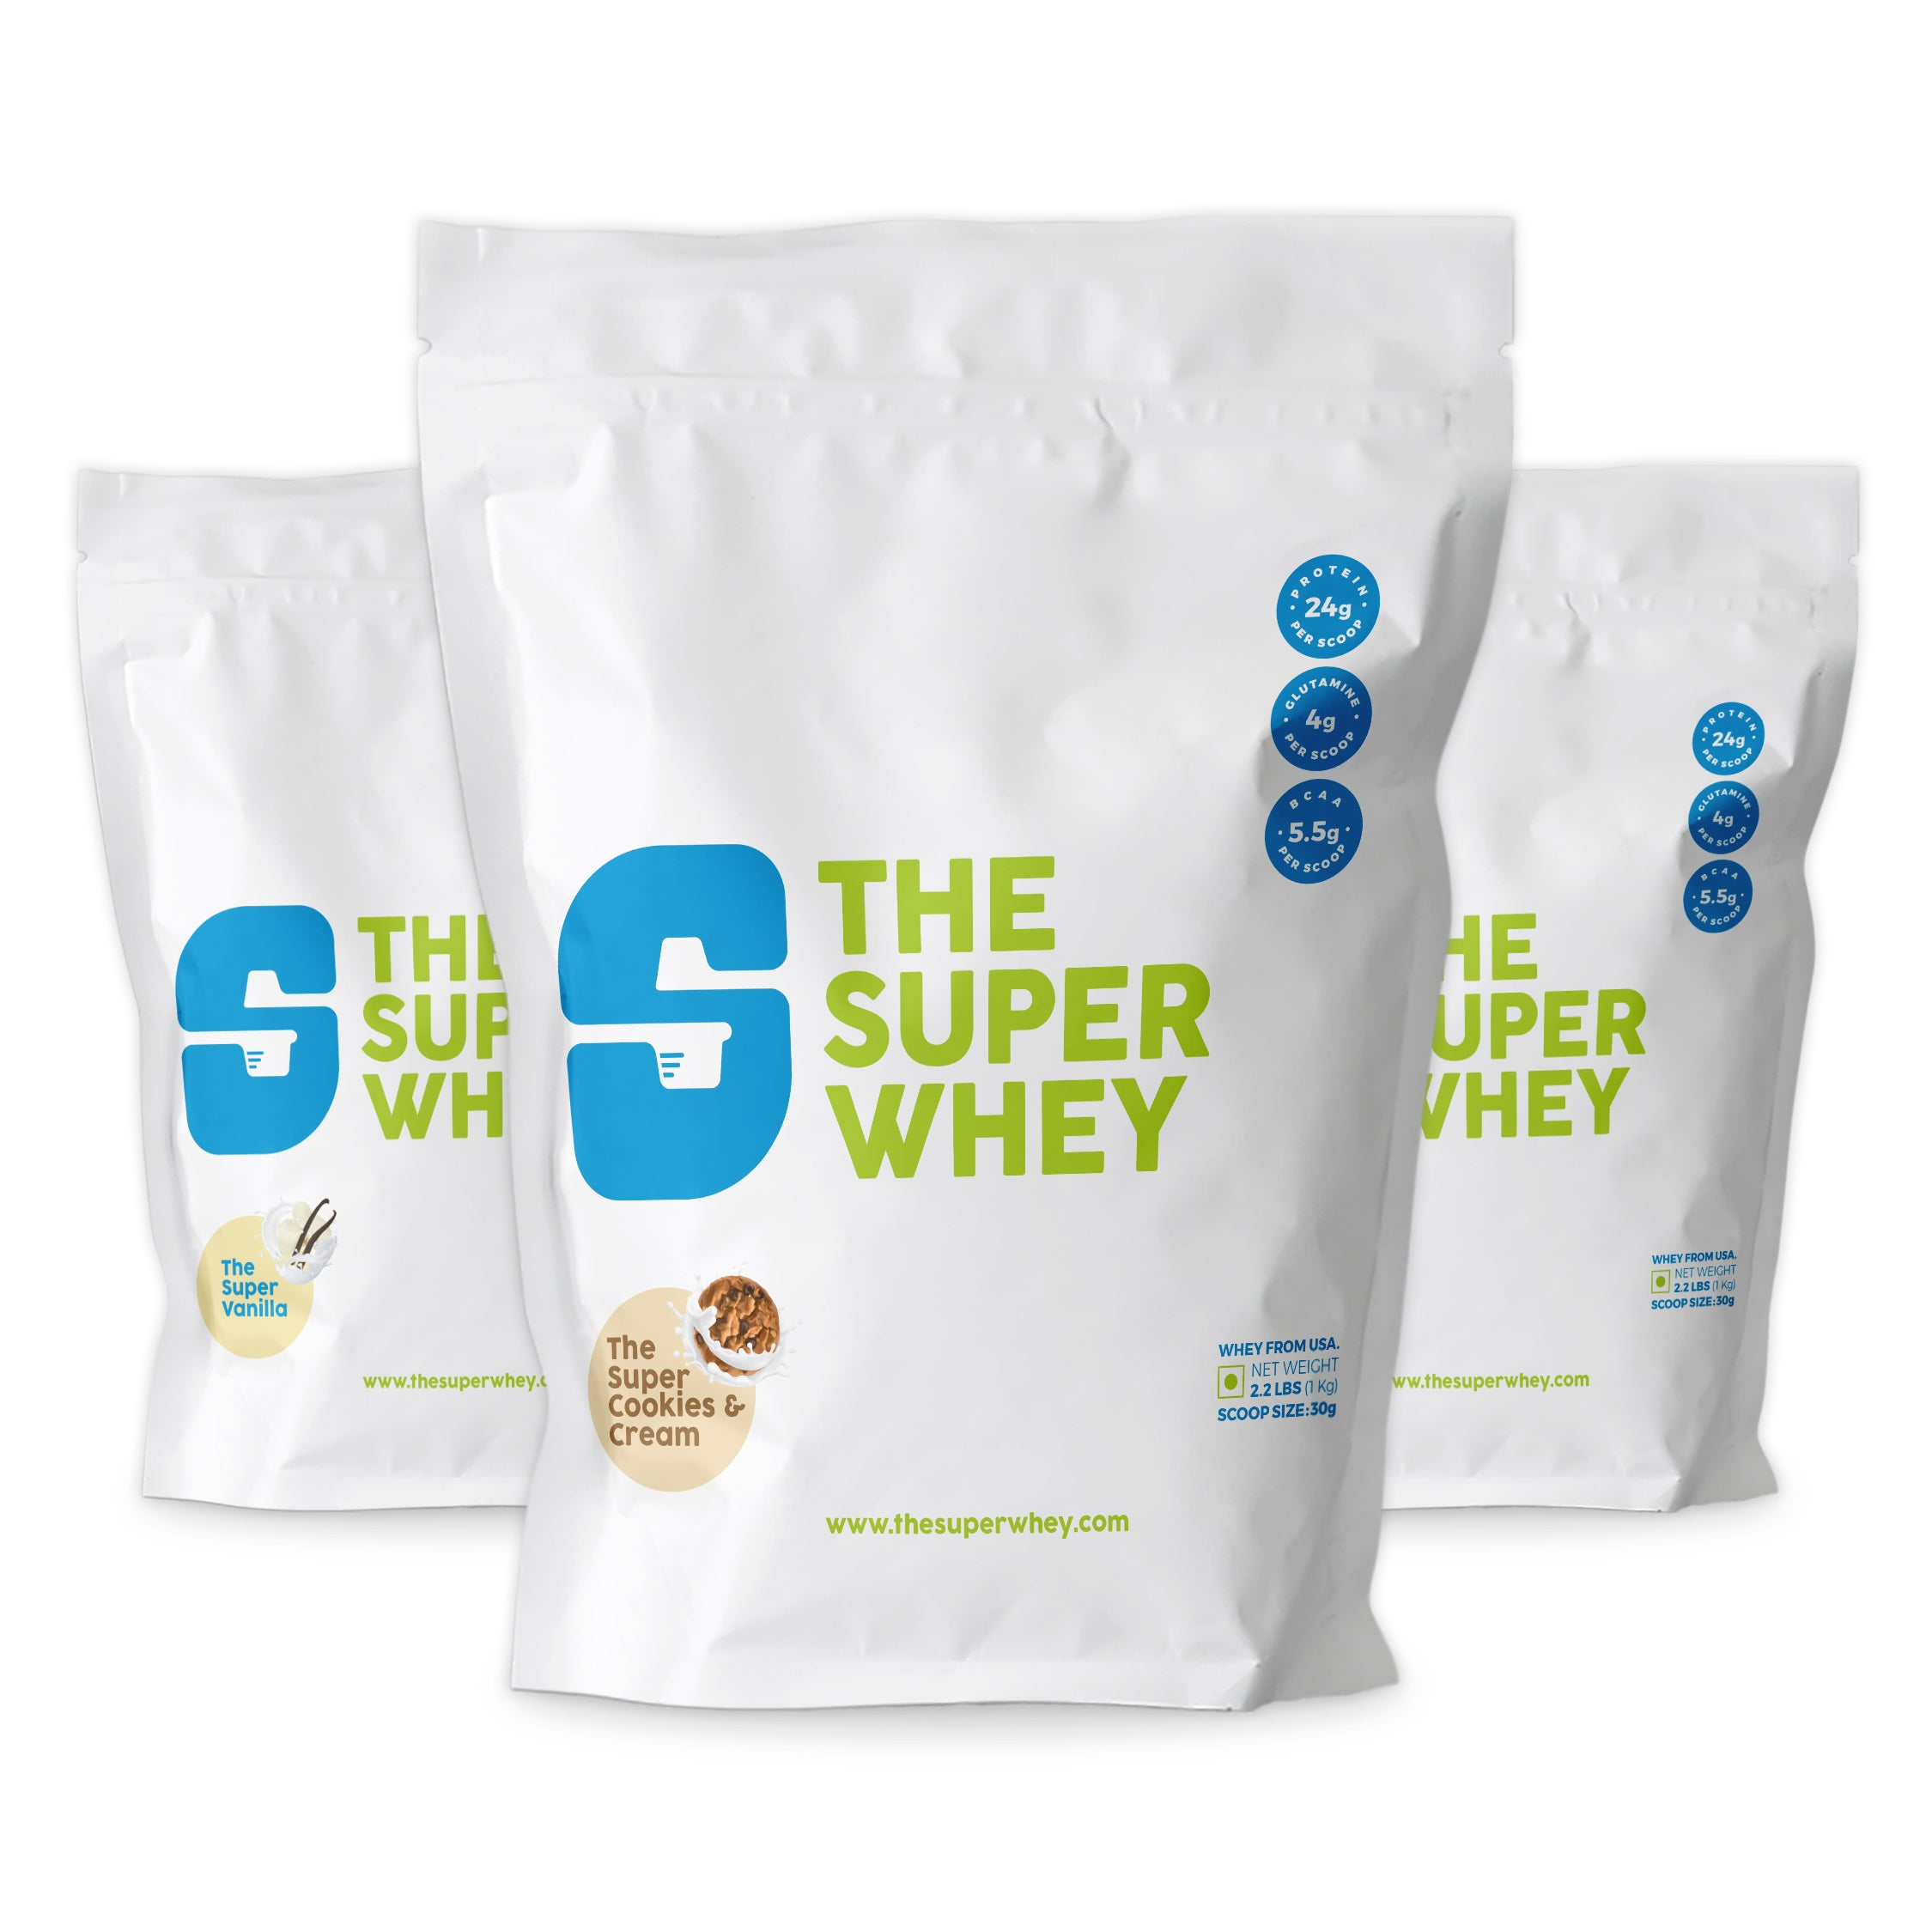 WHEY PROTEIN - The Super Cookies & Cream